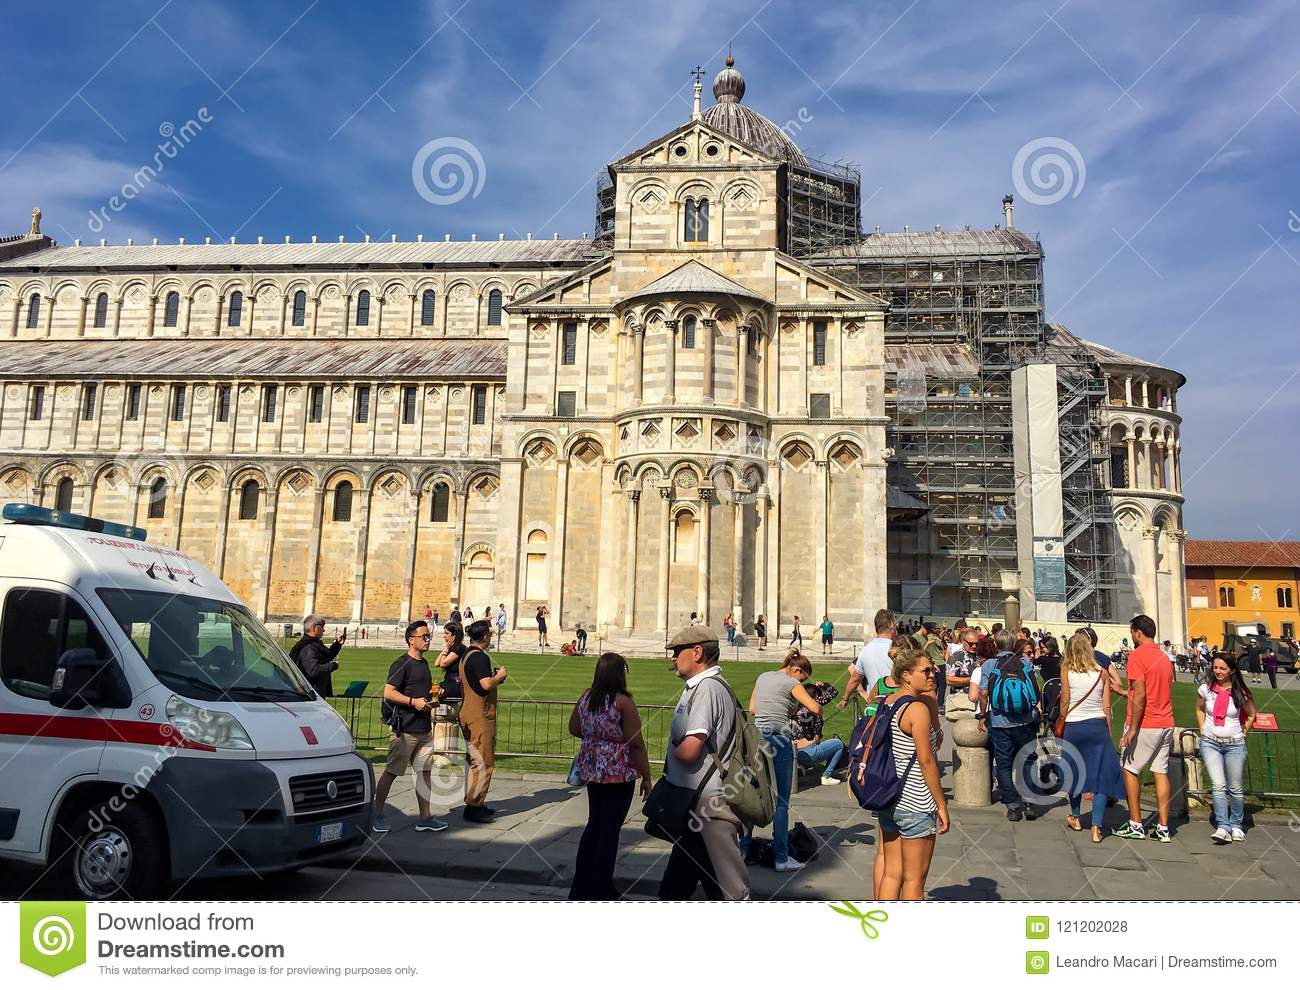 Square of cathedral Pisa Italy